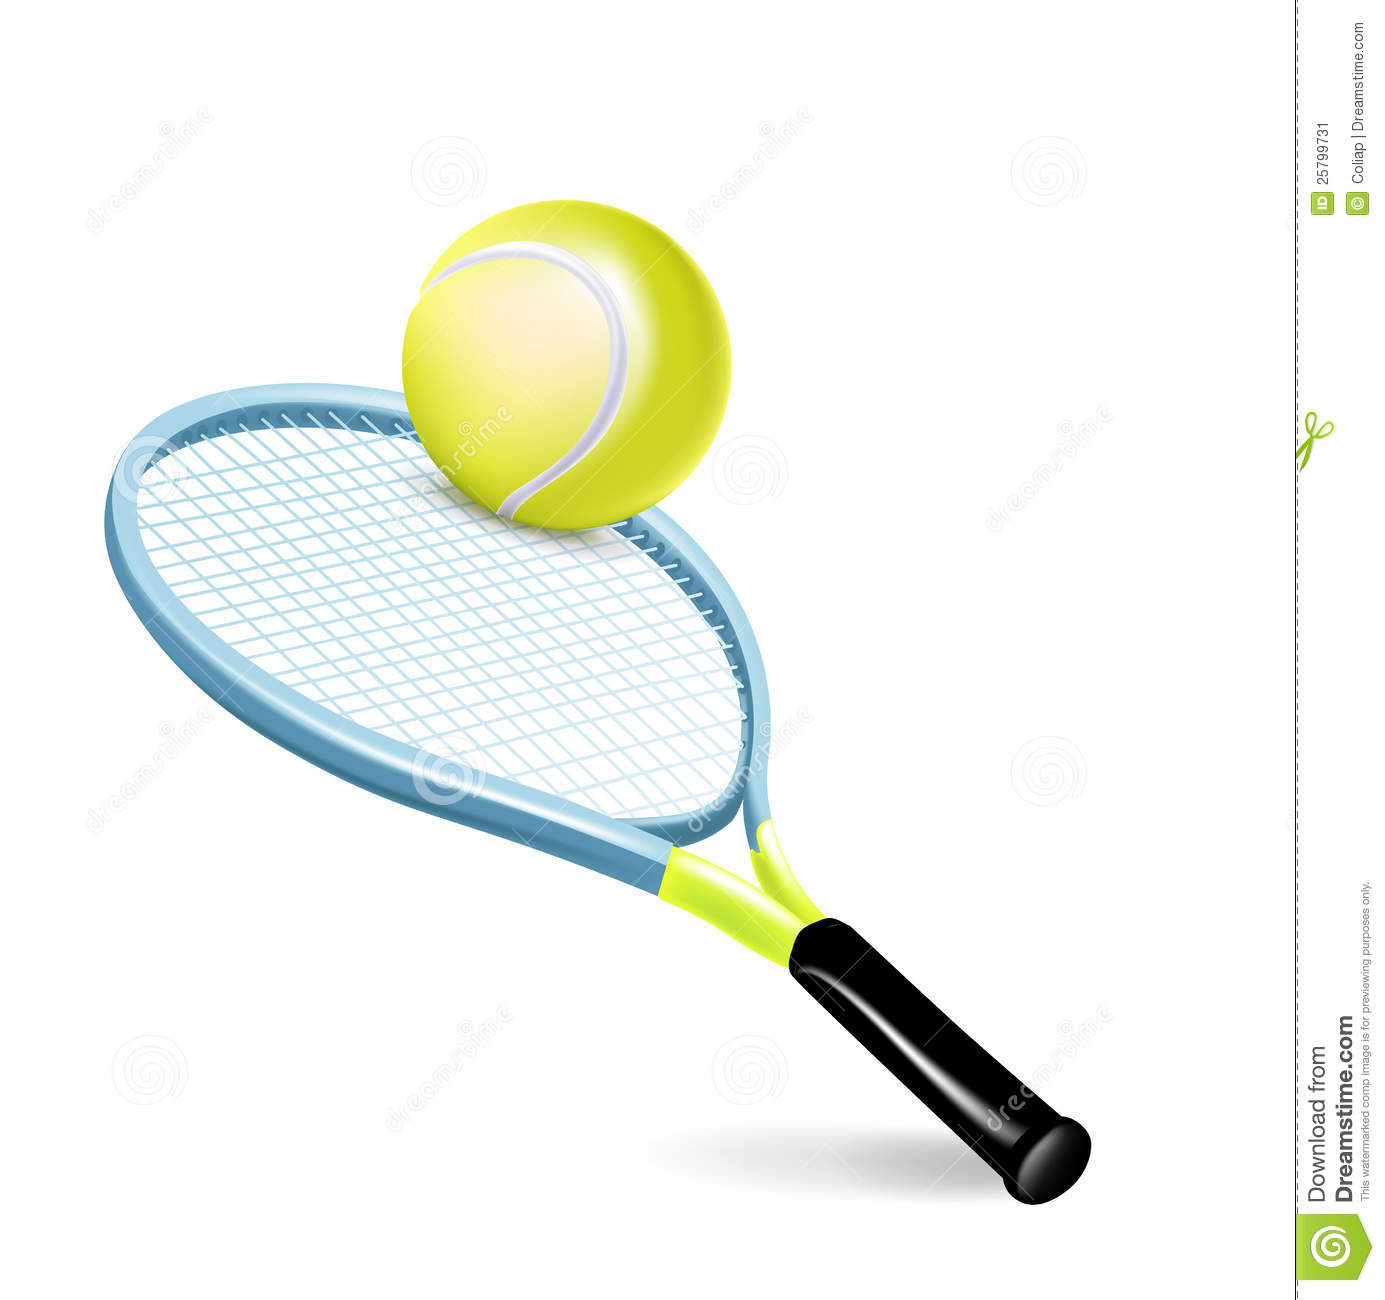 Tennis Racket With Ball Stock Image - Image: 25799731